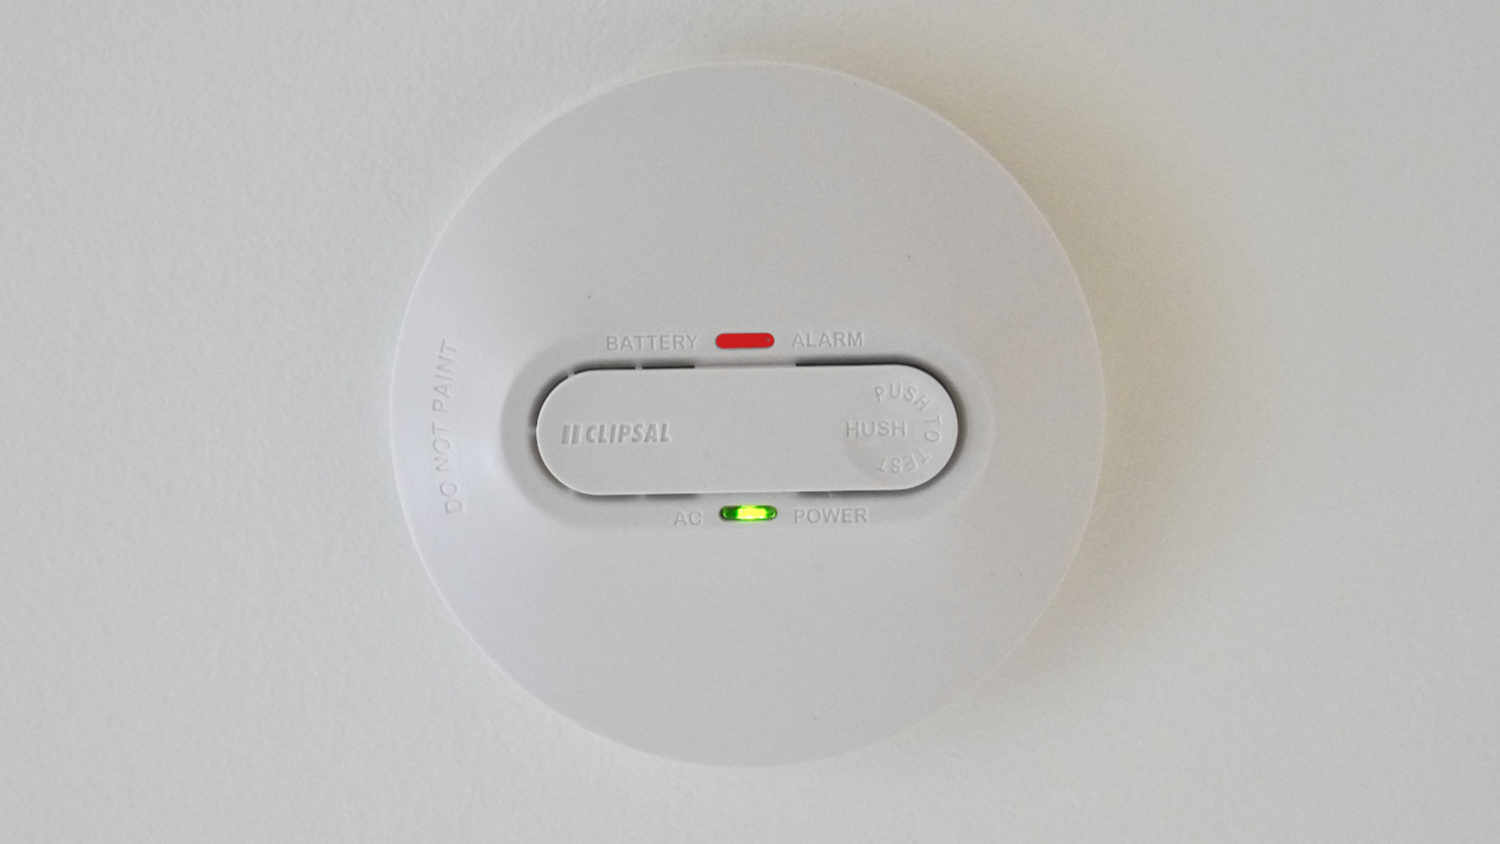 Red Light On A Smoke Detector